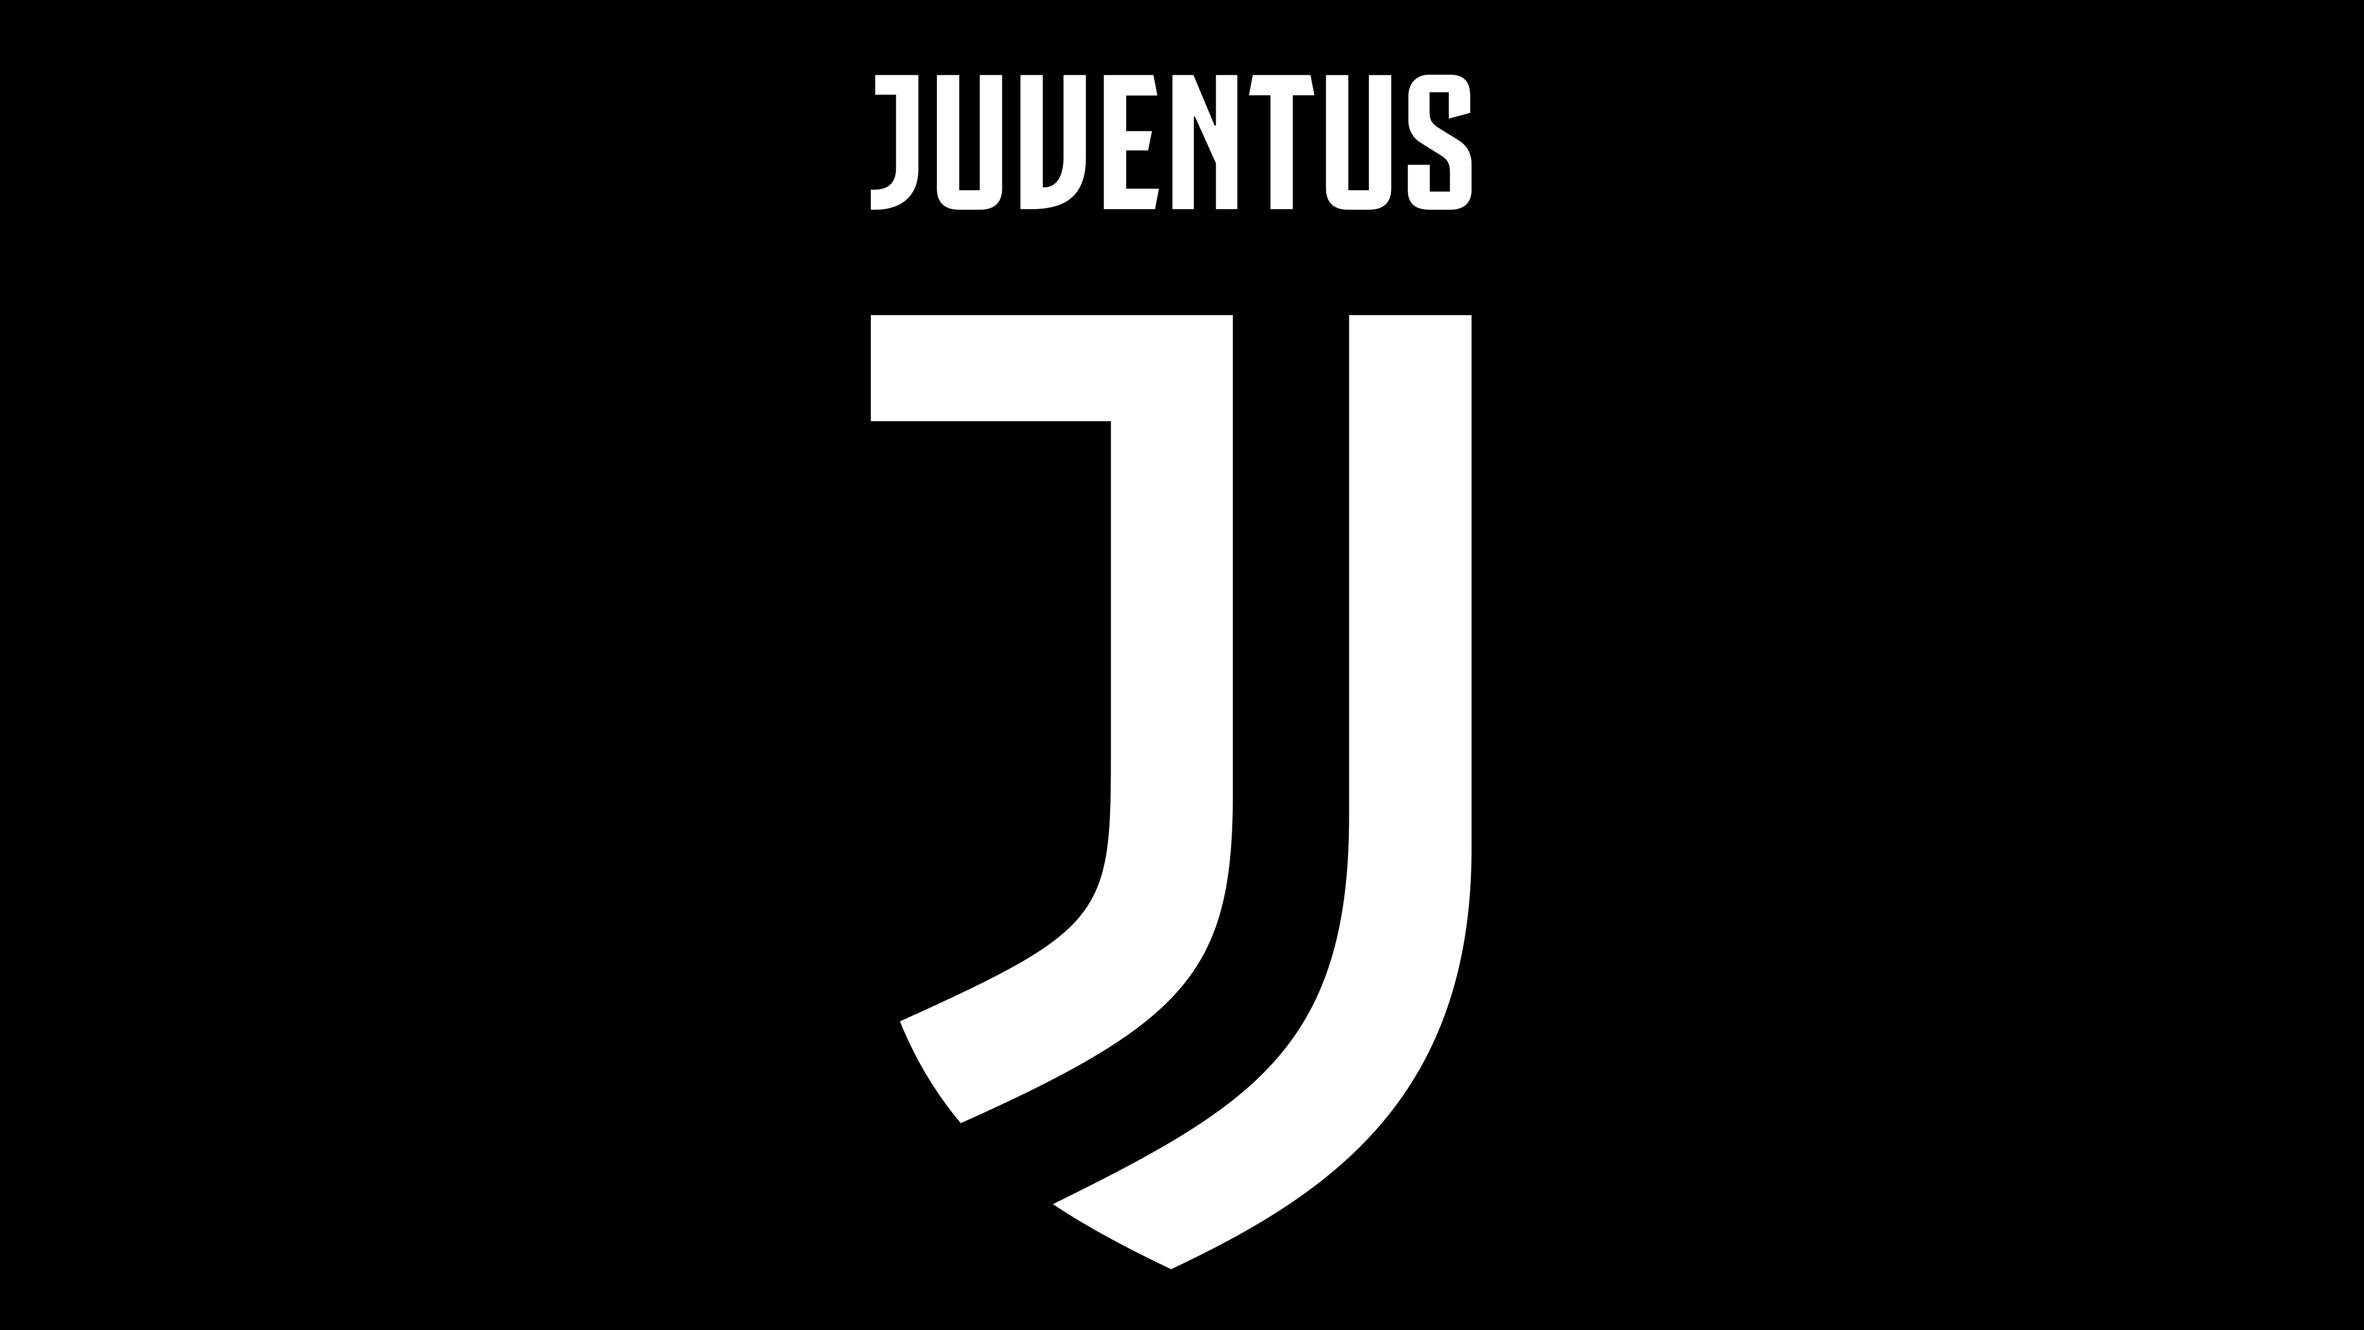 juventus-logo-design-graphics-football_h